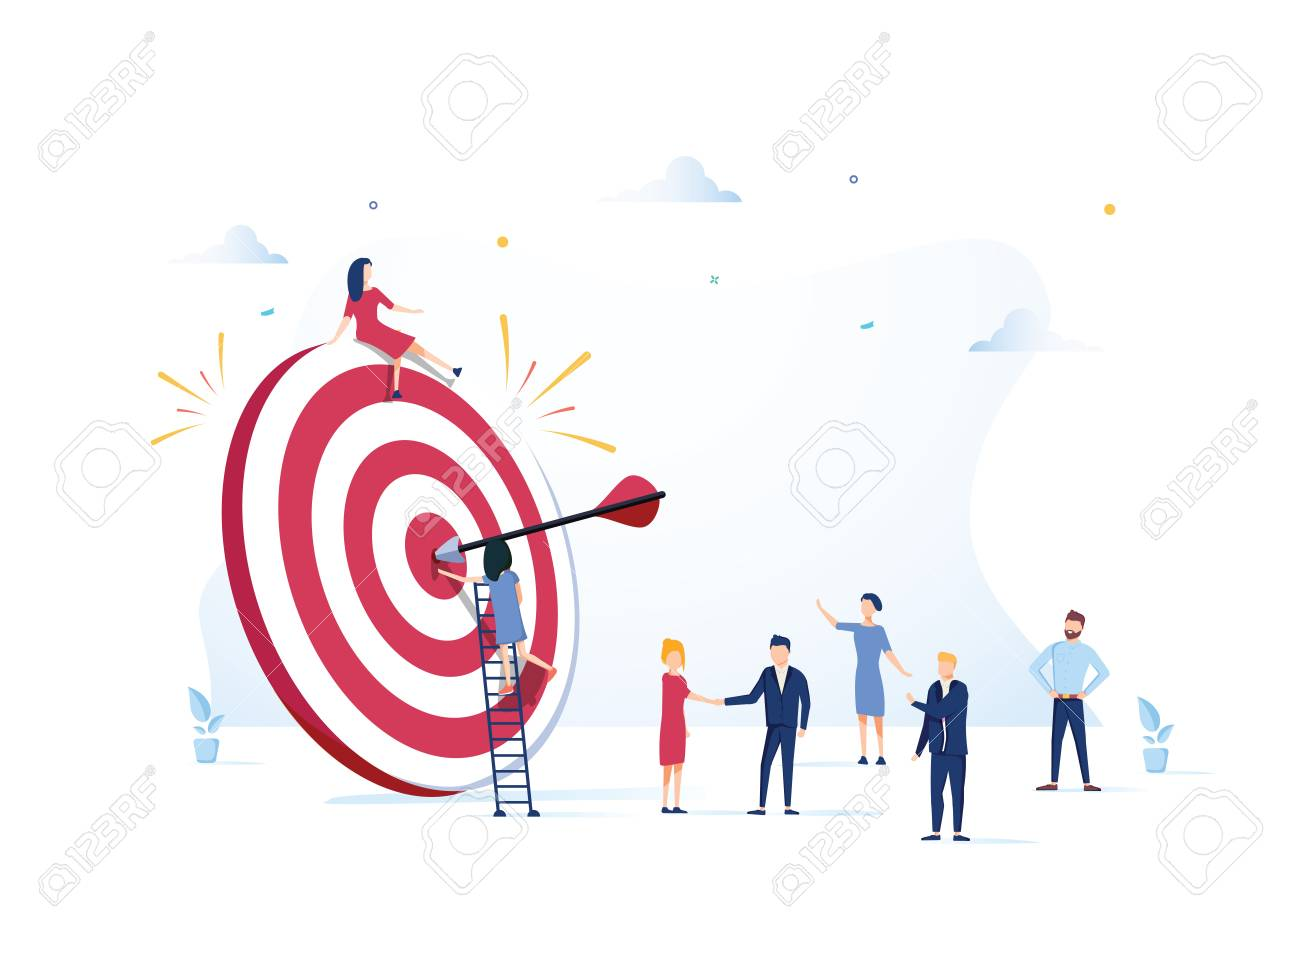 Business Vision, big target with people, teamwork, people run to their goal, move up motivation, target achievement - 125159956